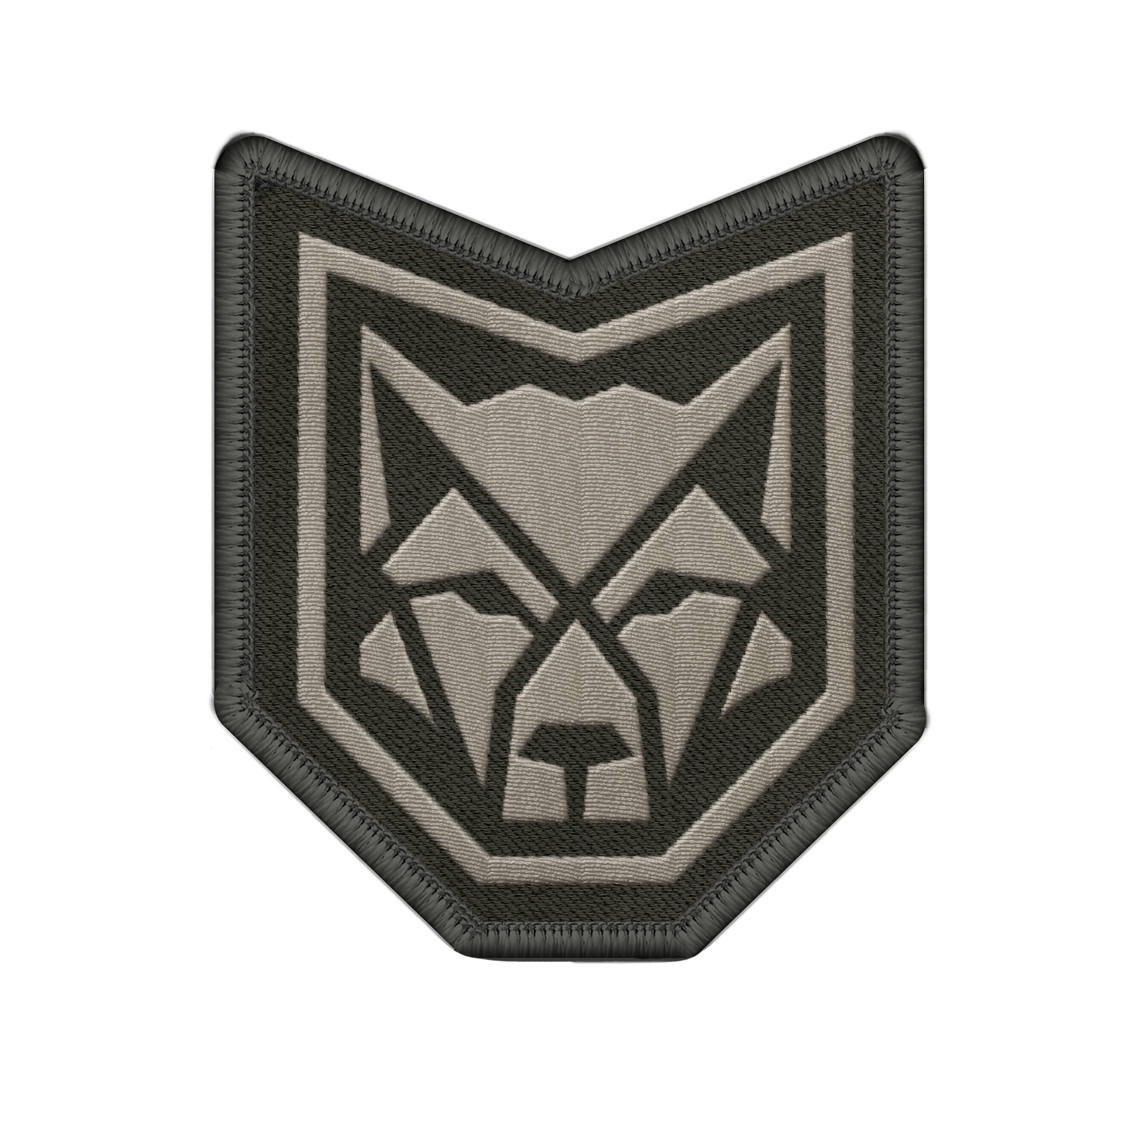 CANIS Wolf Logo Patch